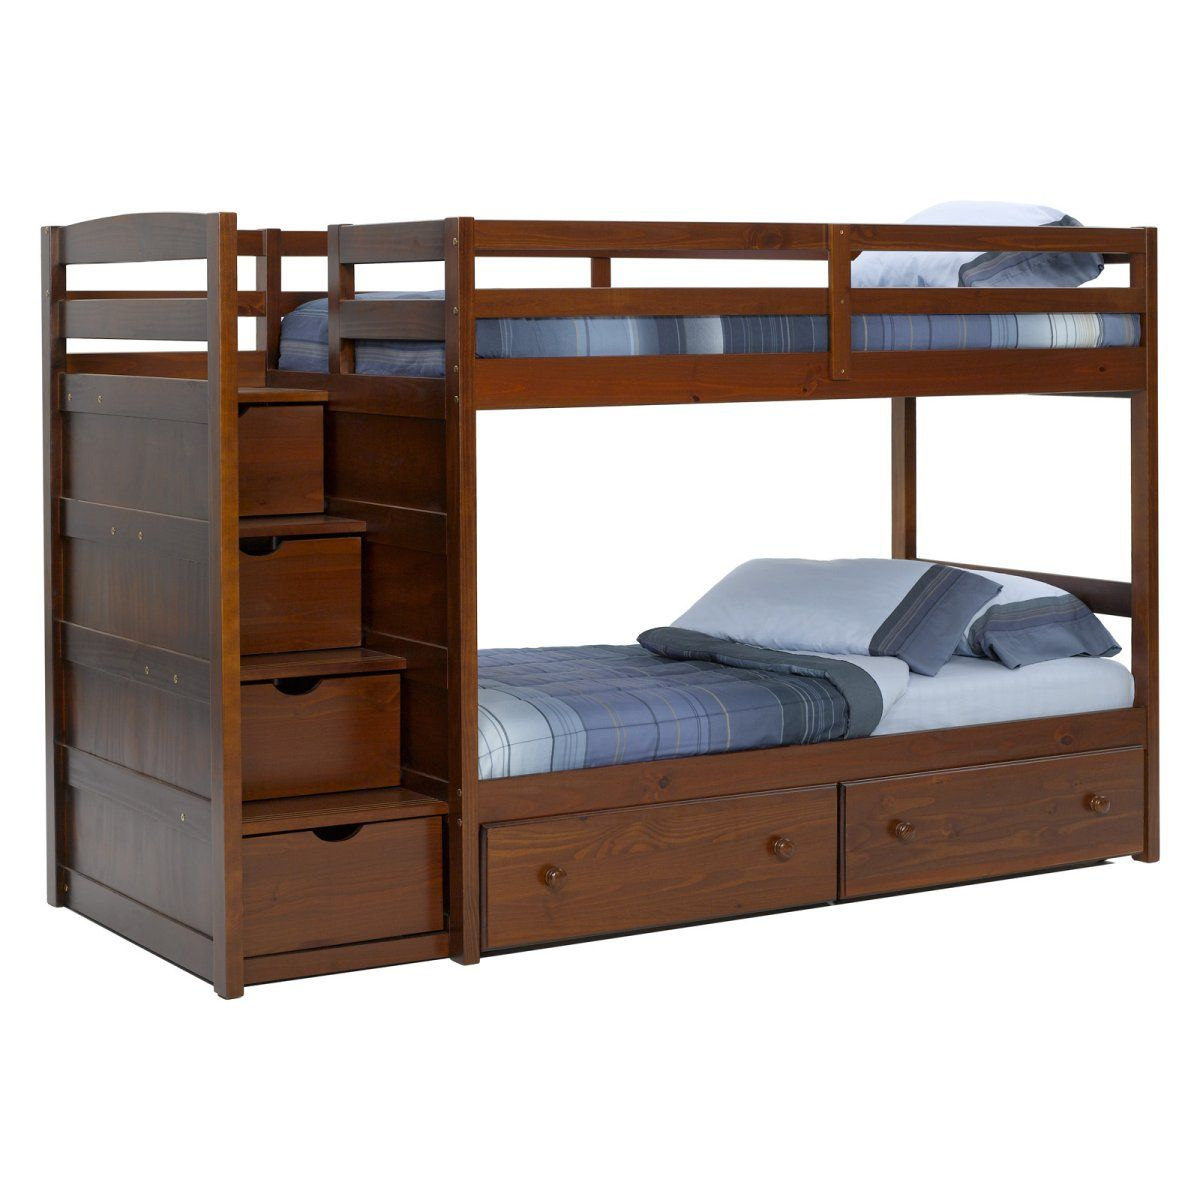 Pine Ridge Front Loading Stair Bunk Bed Chocolate Twin